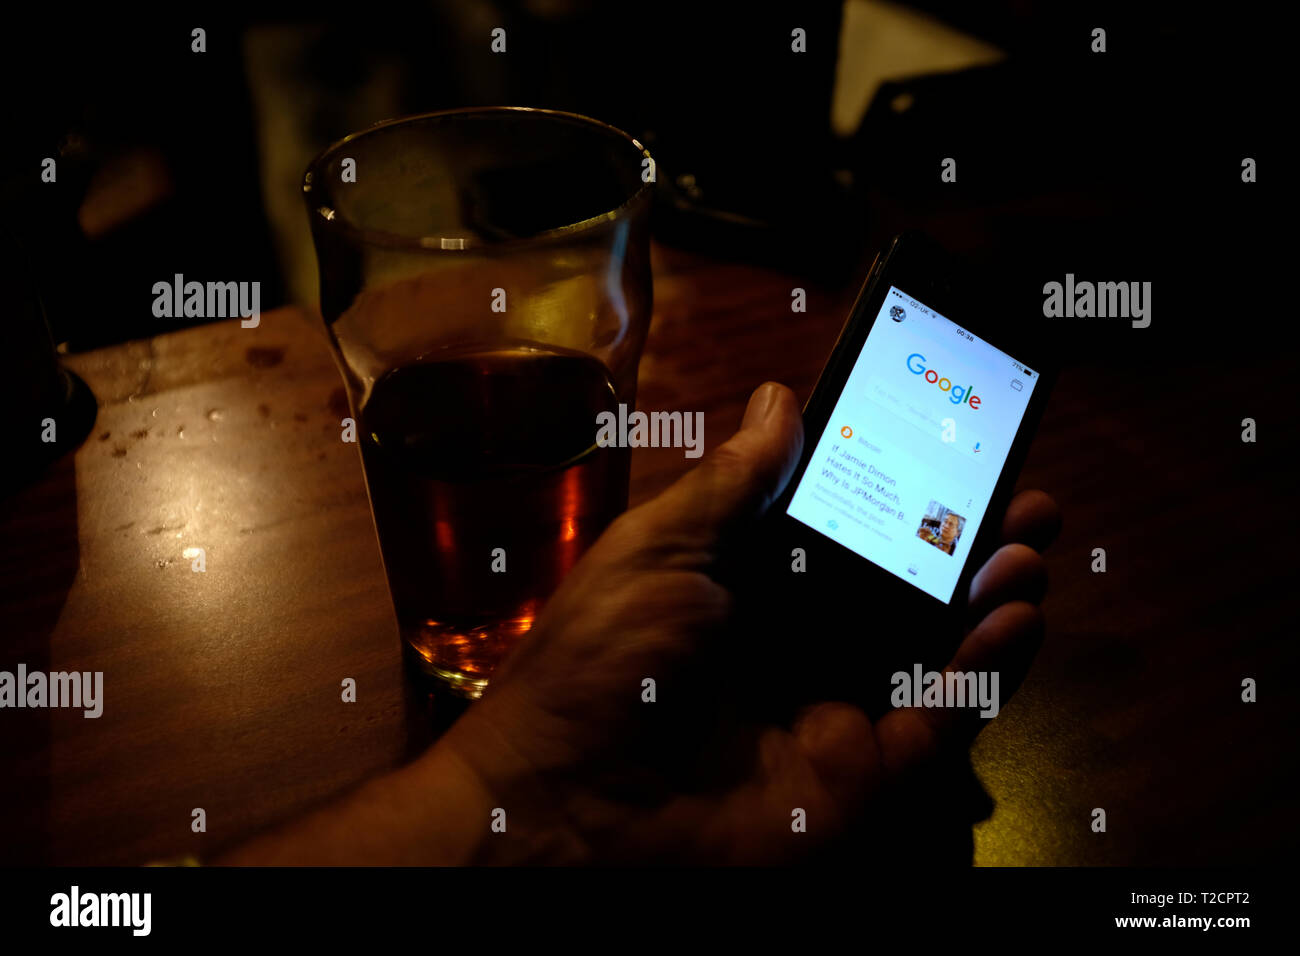 question,quiz,cheating,settling,pub,discussion,argument,using,Google,on,smartphone,iPhone, - Stock Image